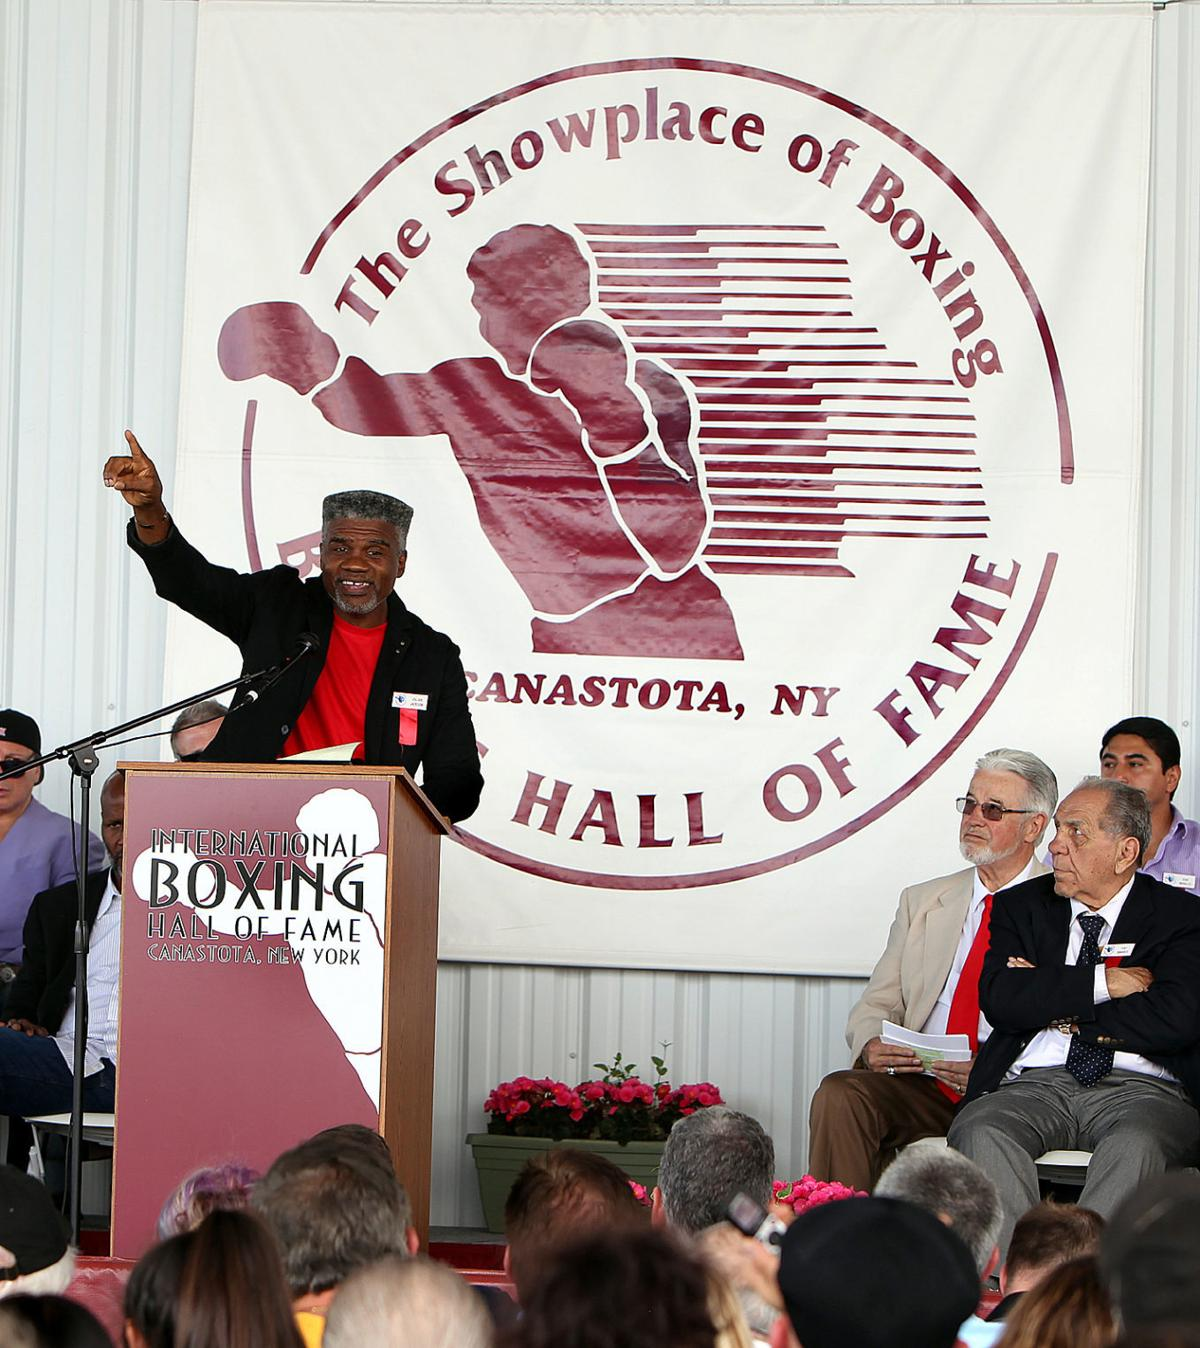 Julian Jackson International Boxing Hall of Fame 03